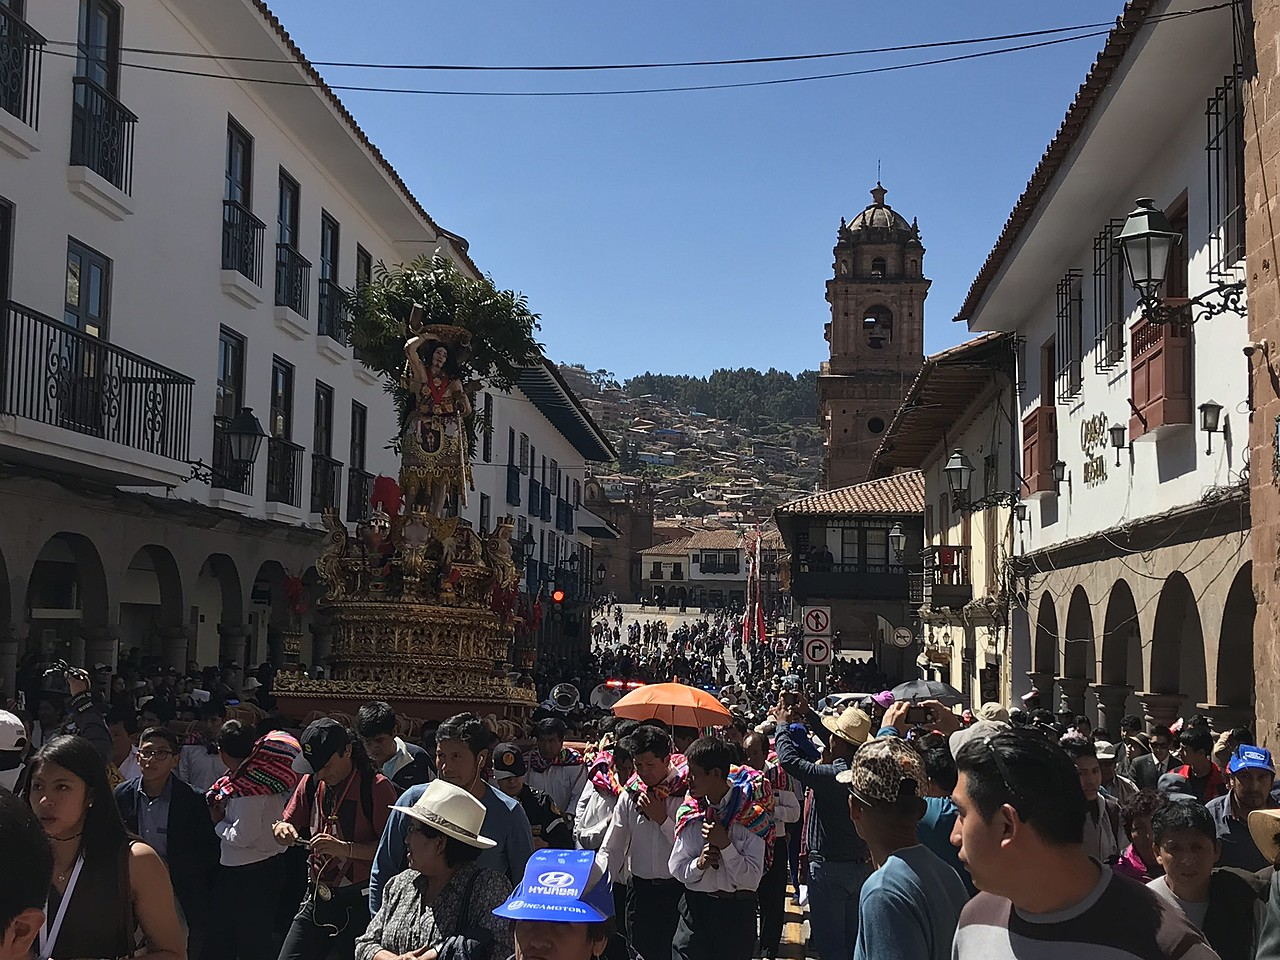 Festival Corpus Cristi, Cusco, Peru | Photo taken by Marianne H